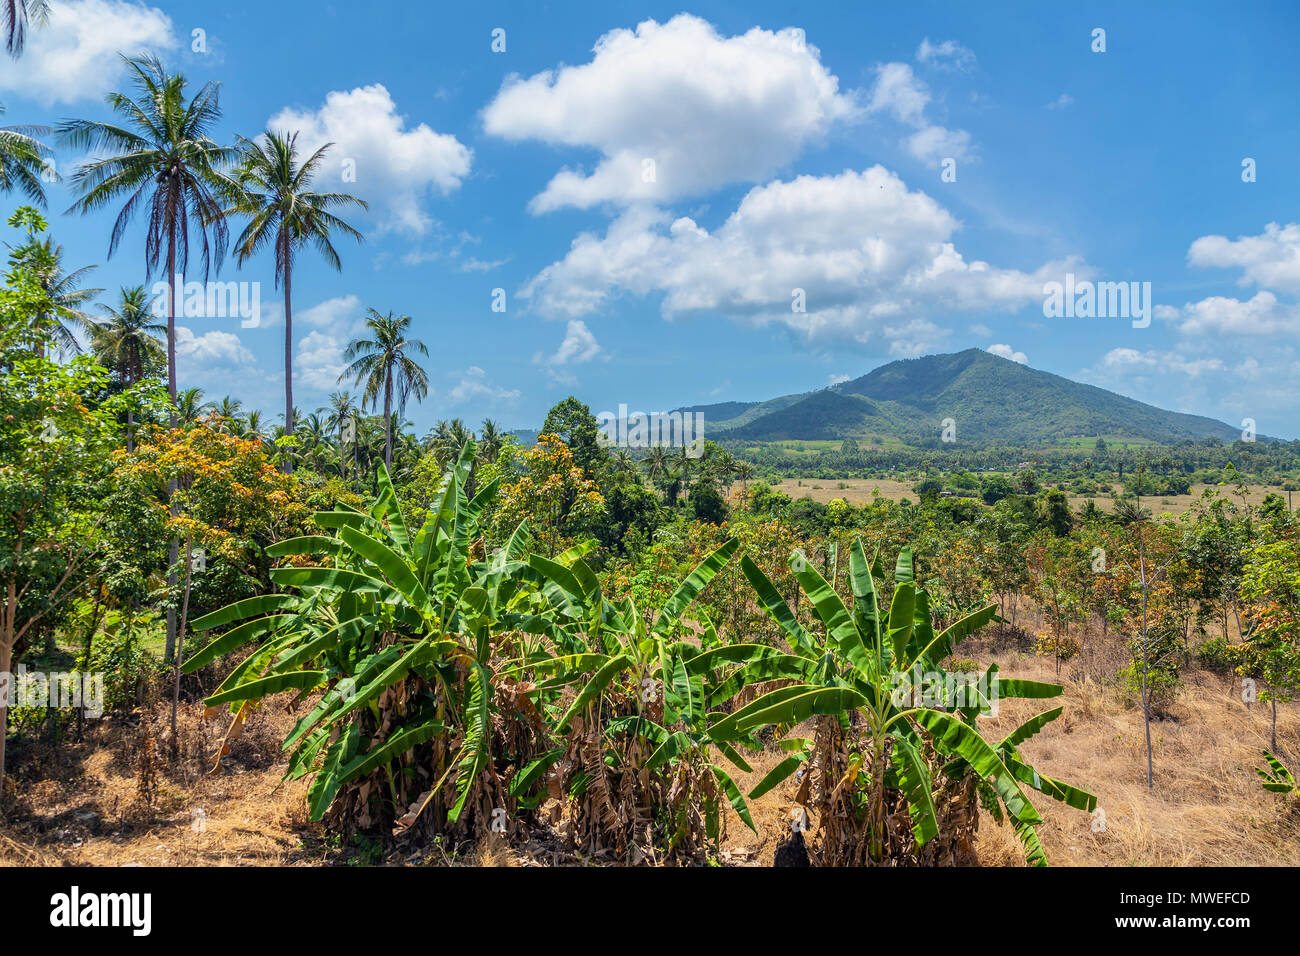 Panorama of Koh Samui. Thailand. - Stock Image